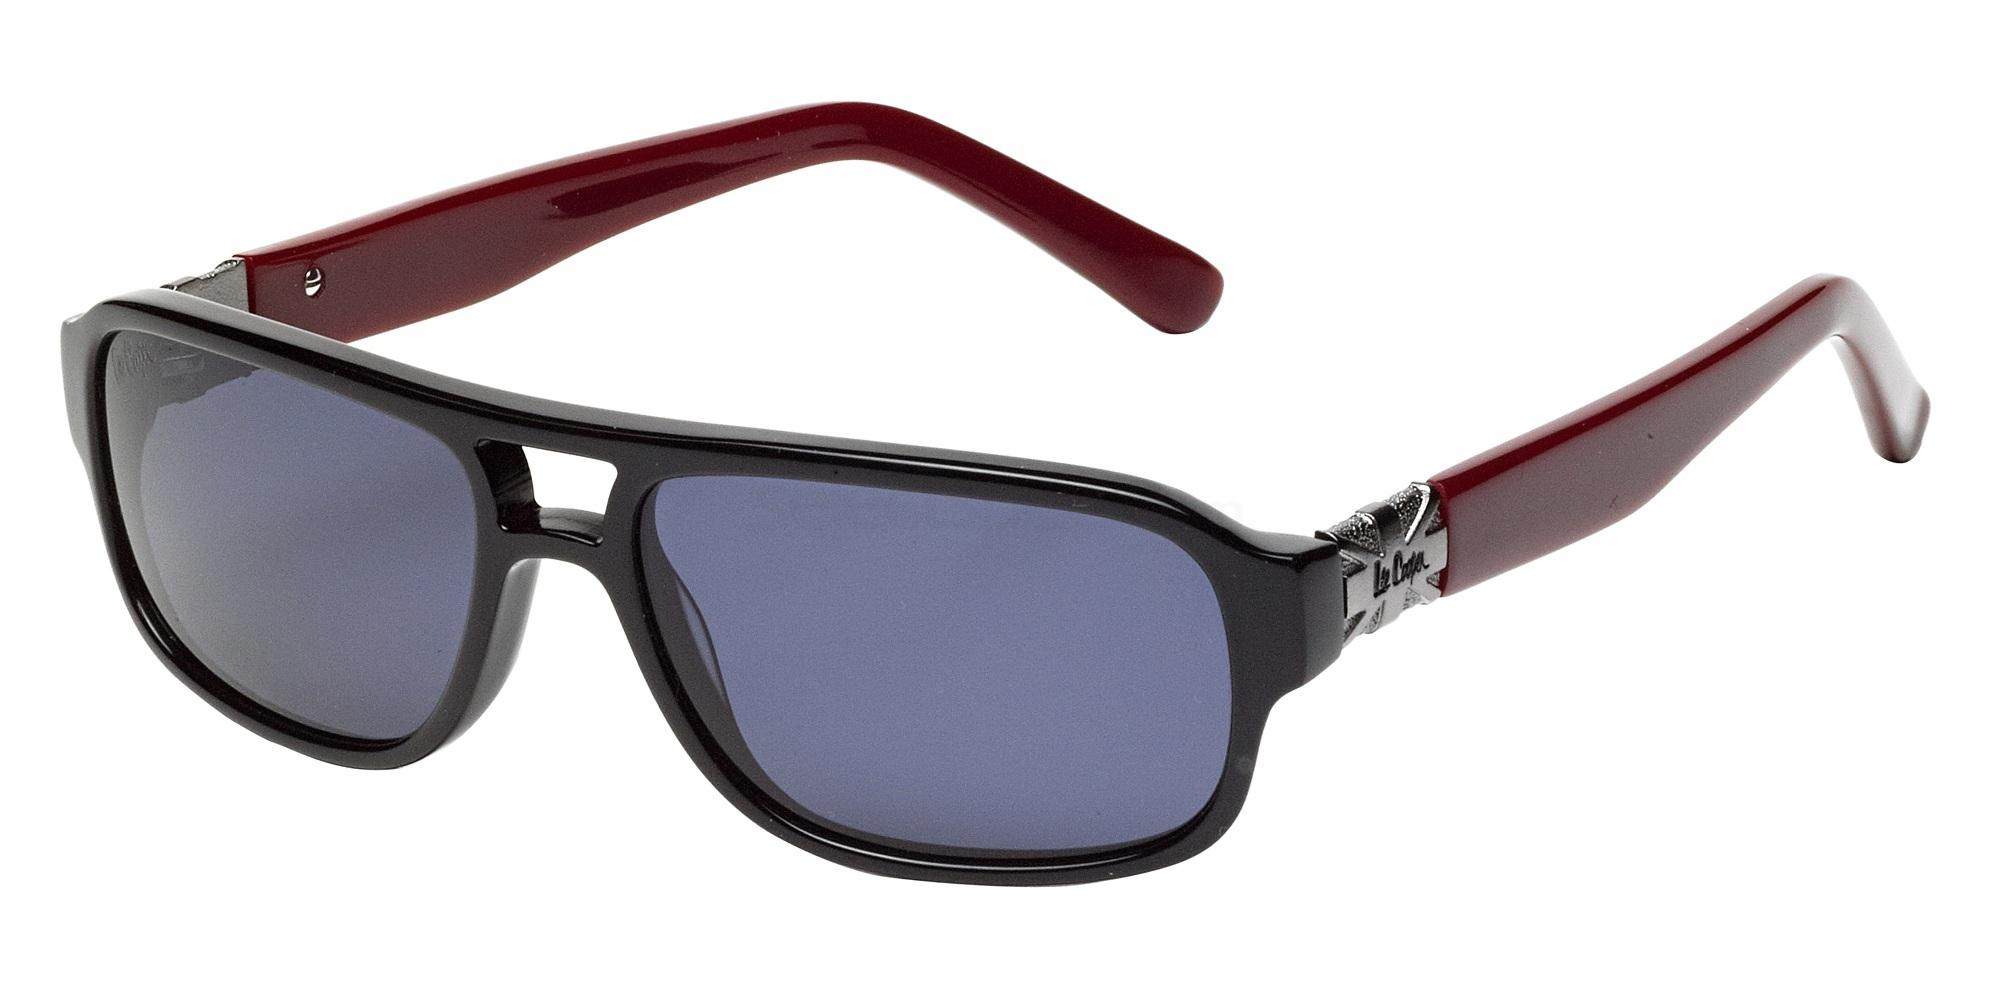 C1 SGLCK103 Sunglasses, Lee Cooper KIDS